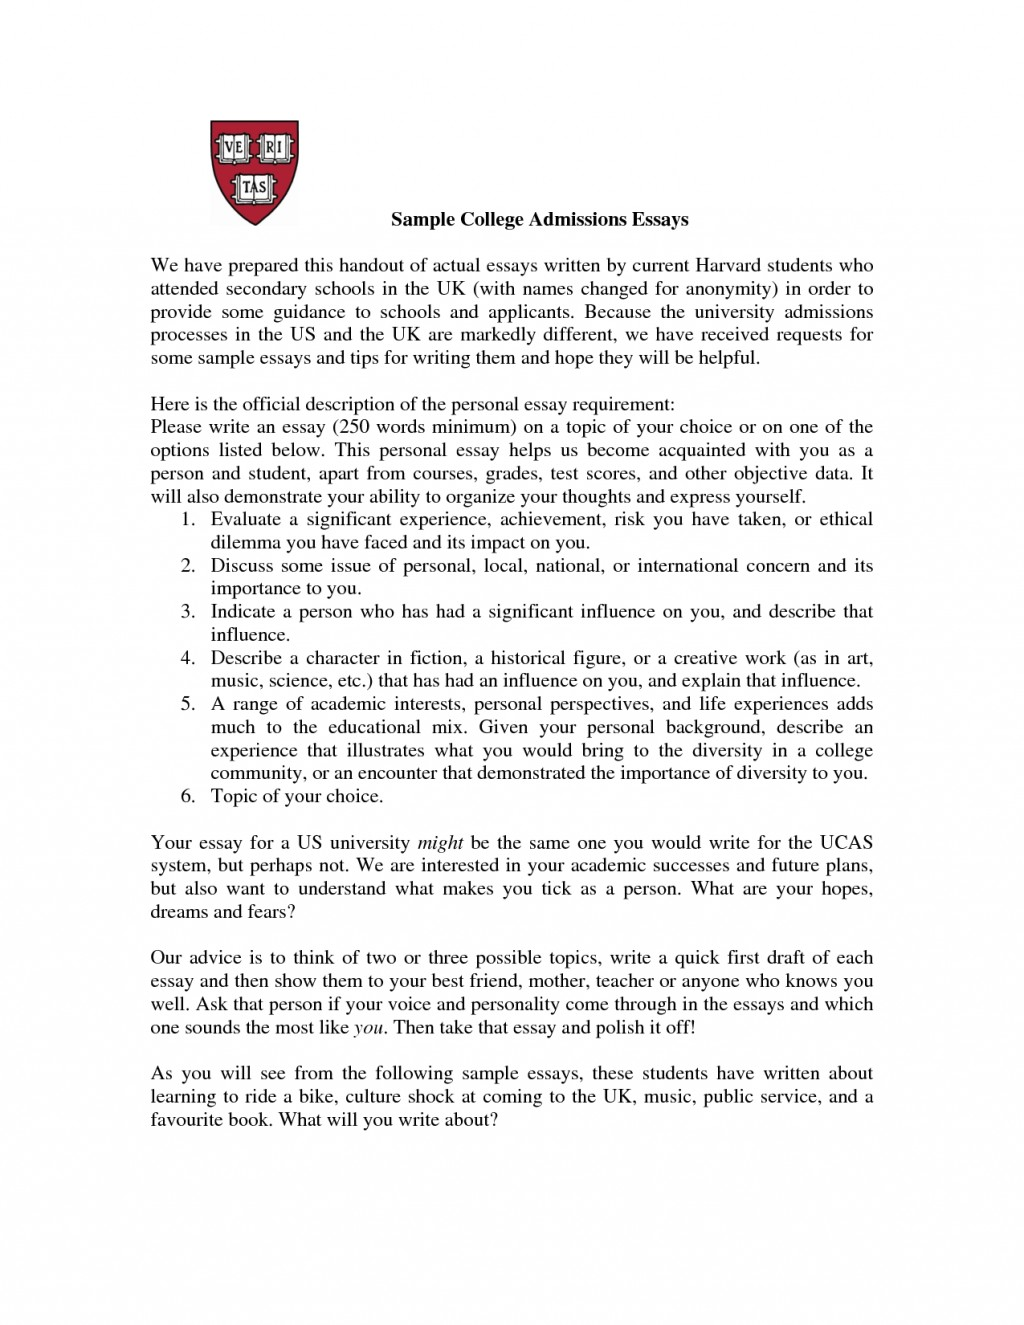 025 Essay Example College Heading What To Write Application About Incredible Personal Admission Format Admissions Sample Large